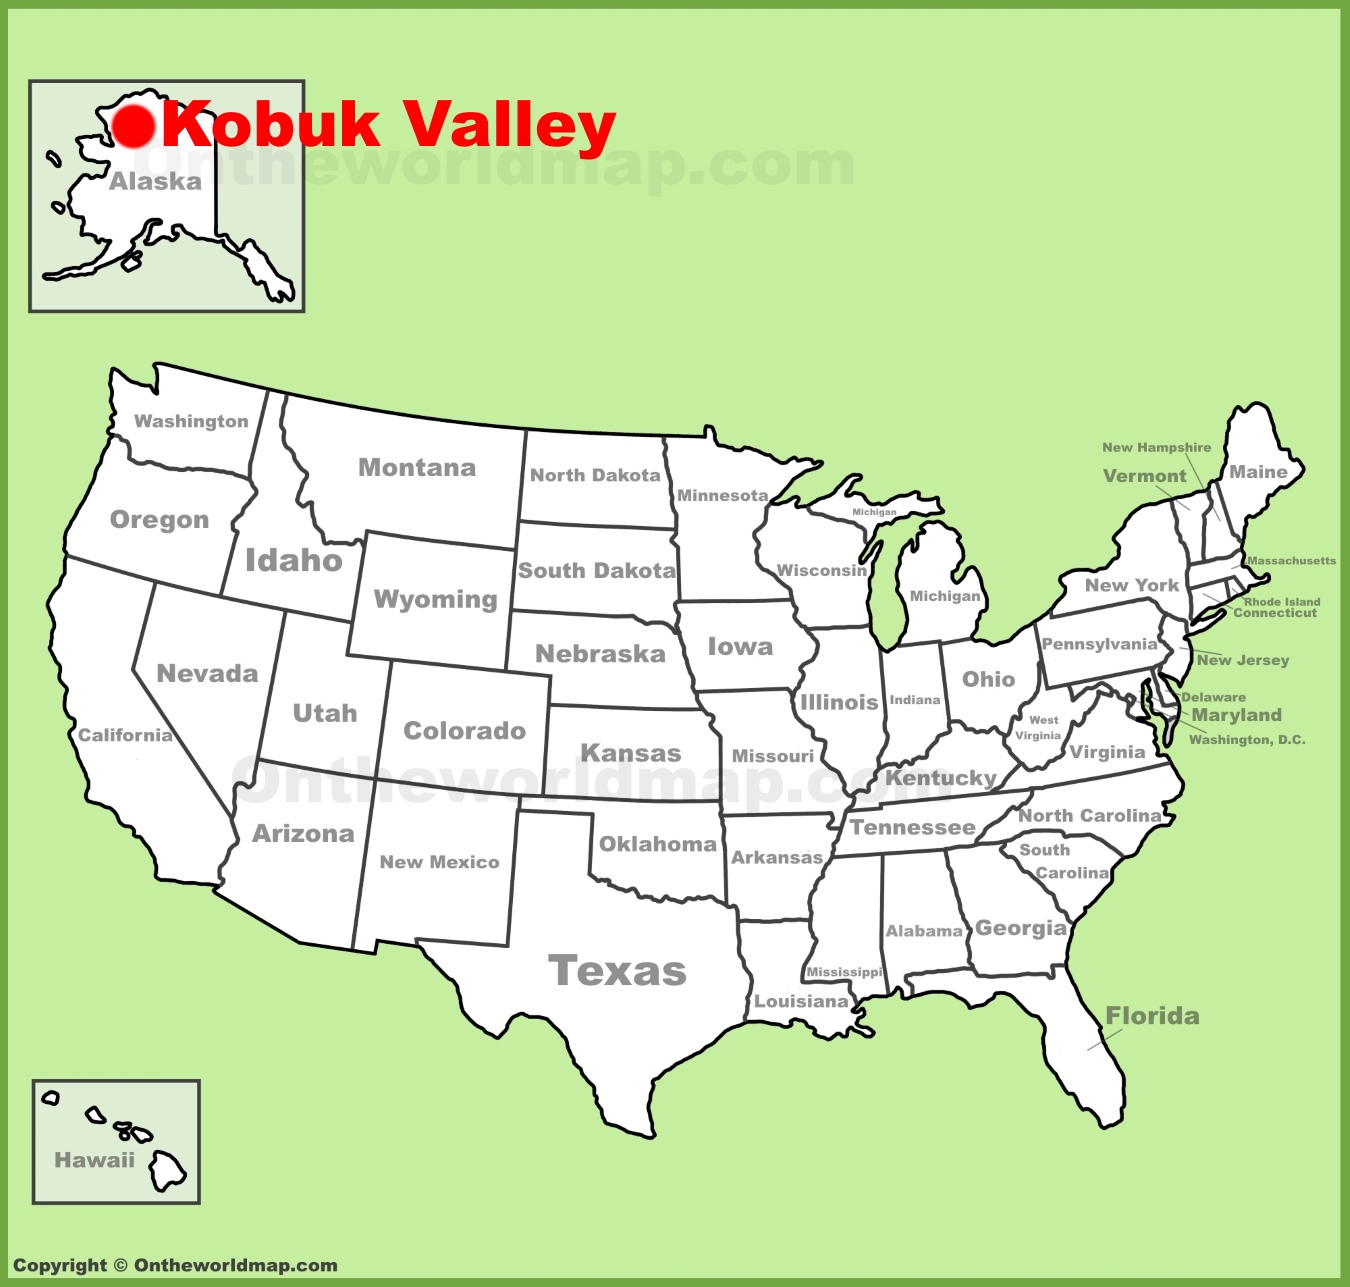 Kobuk Valley National Park location on the U.S. Map on natchez trace parkway map, cuyahoga falls map, us hiking trails map, alaska map, zions park topographical map, us national parks map, death valley map, yukon territory map, grand teton map, nationwide map, lake powell map, monument valley trail map, canyonlands map, cotton canyon map, kenai peninsula map, kobuk river map, yosemite elevation map,